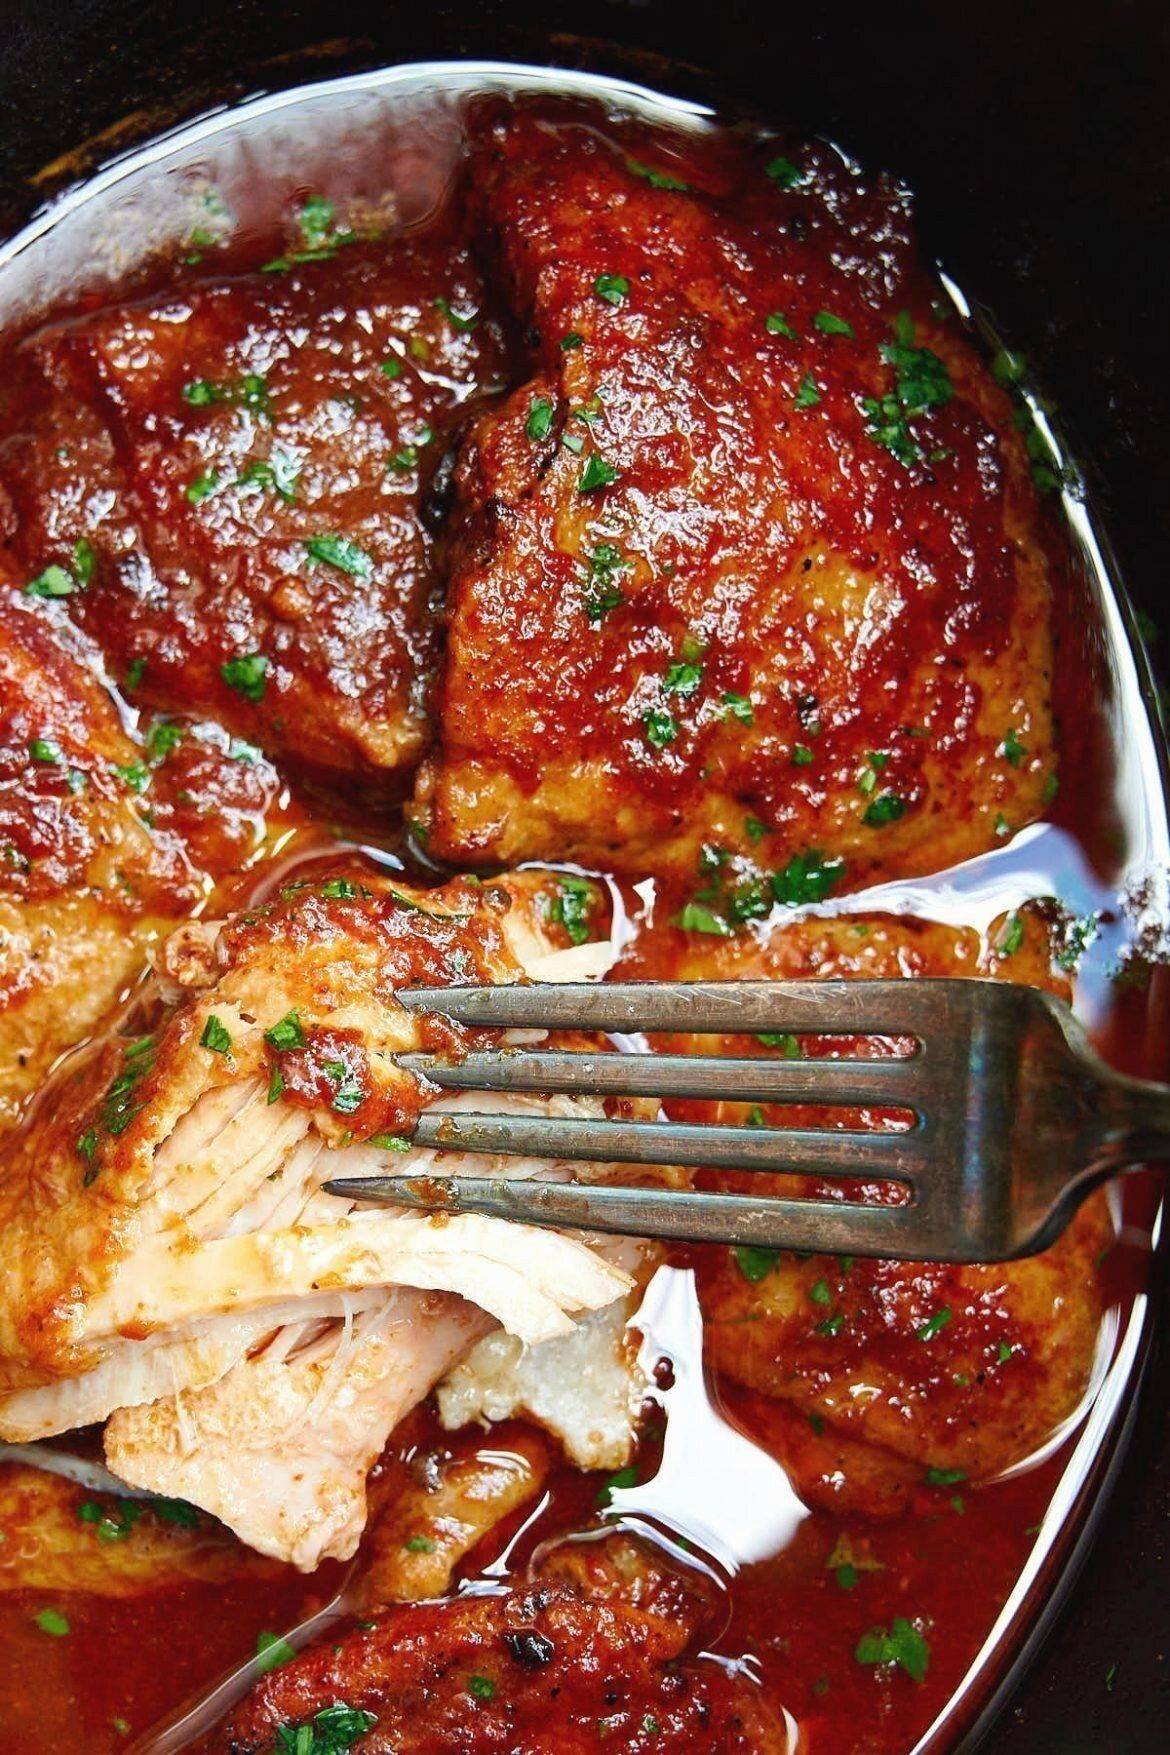 Slow Cooker Bbq Chicken Oked Low And Slow Best Crock Pot Bbq Chicken In 2020 Slow Cooker Bbq Chicken Slow Cooker Bbq Bbq Chicken Crockpot